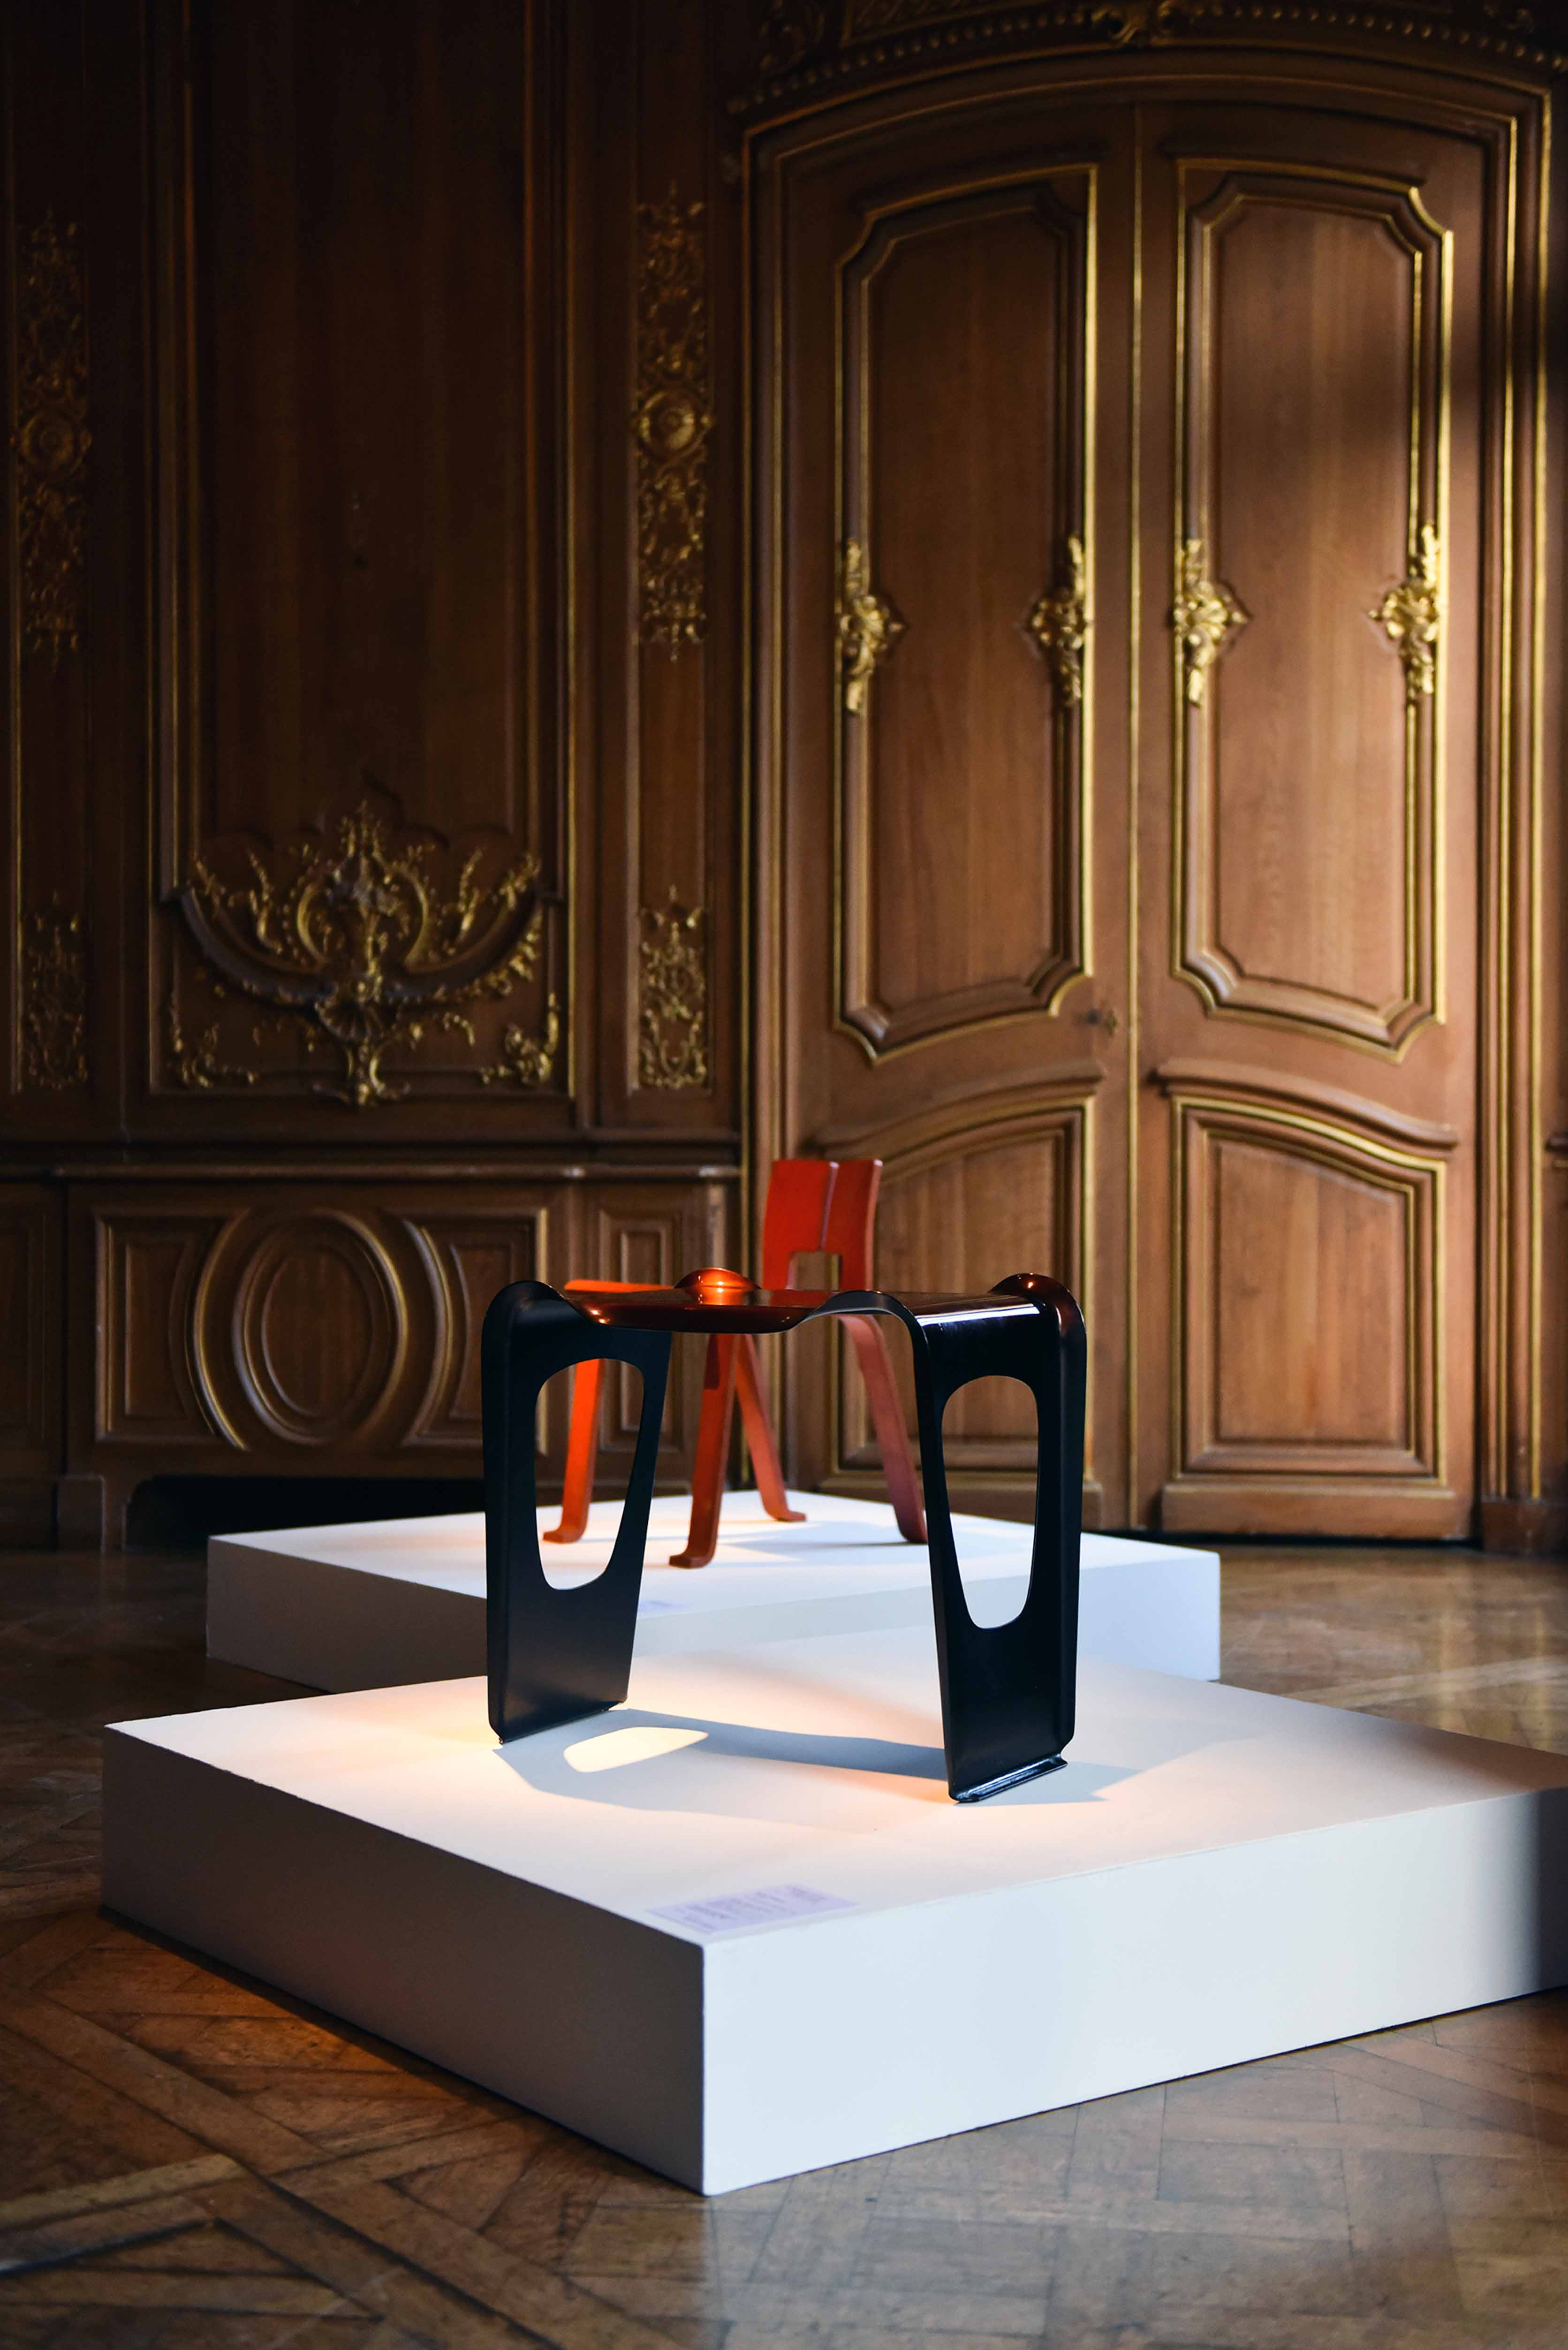 Design, Charlotte for ever, exposition-2- © Artcurial